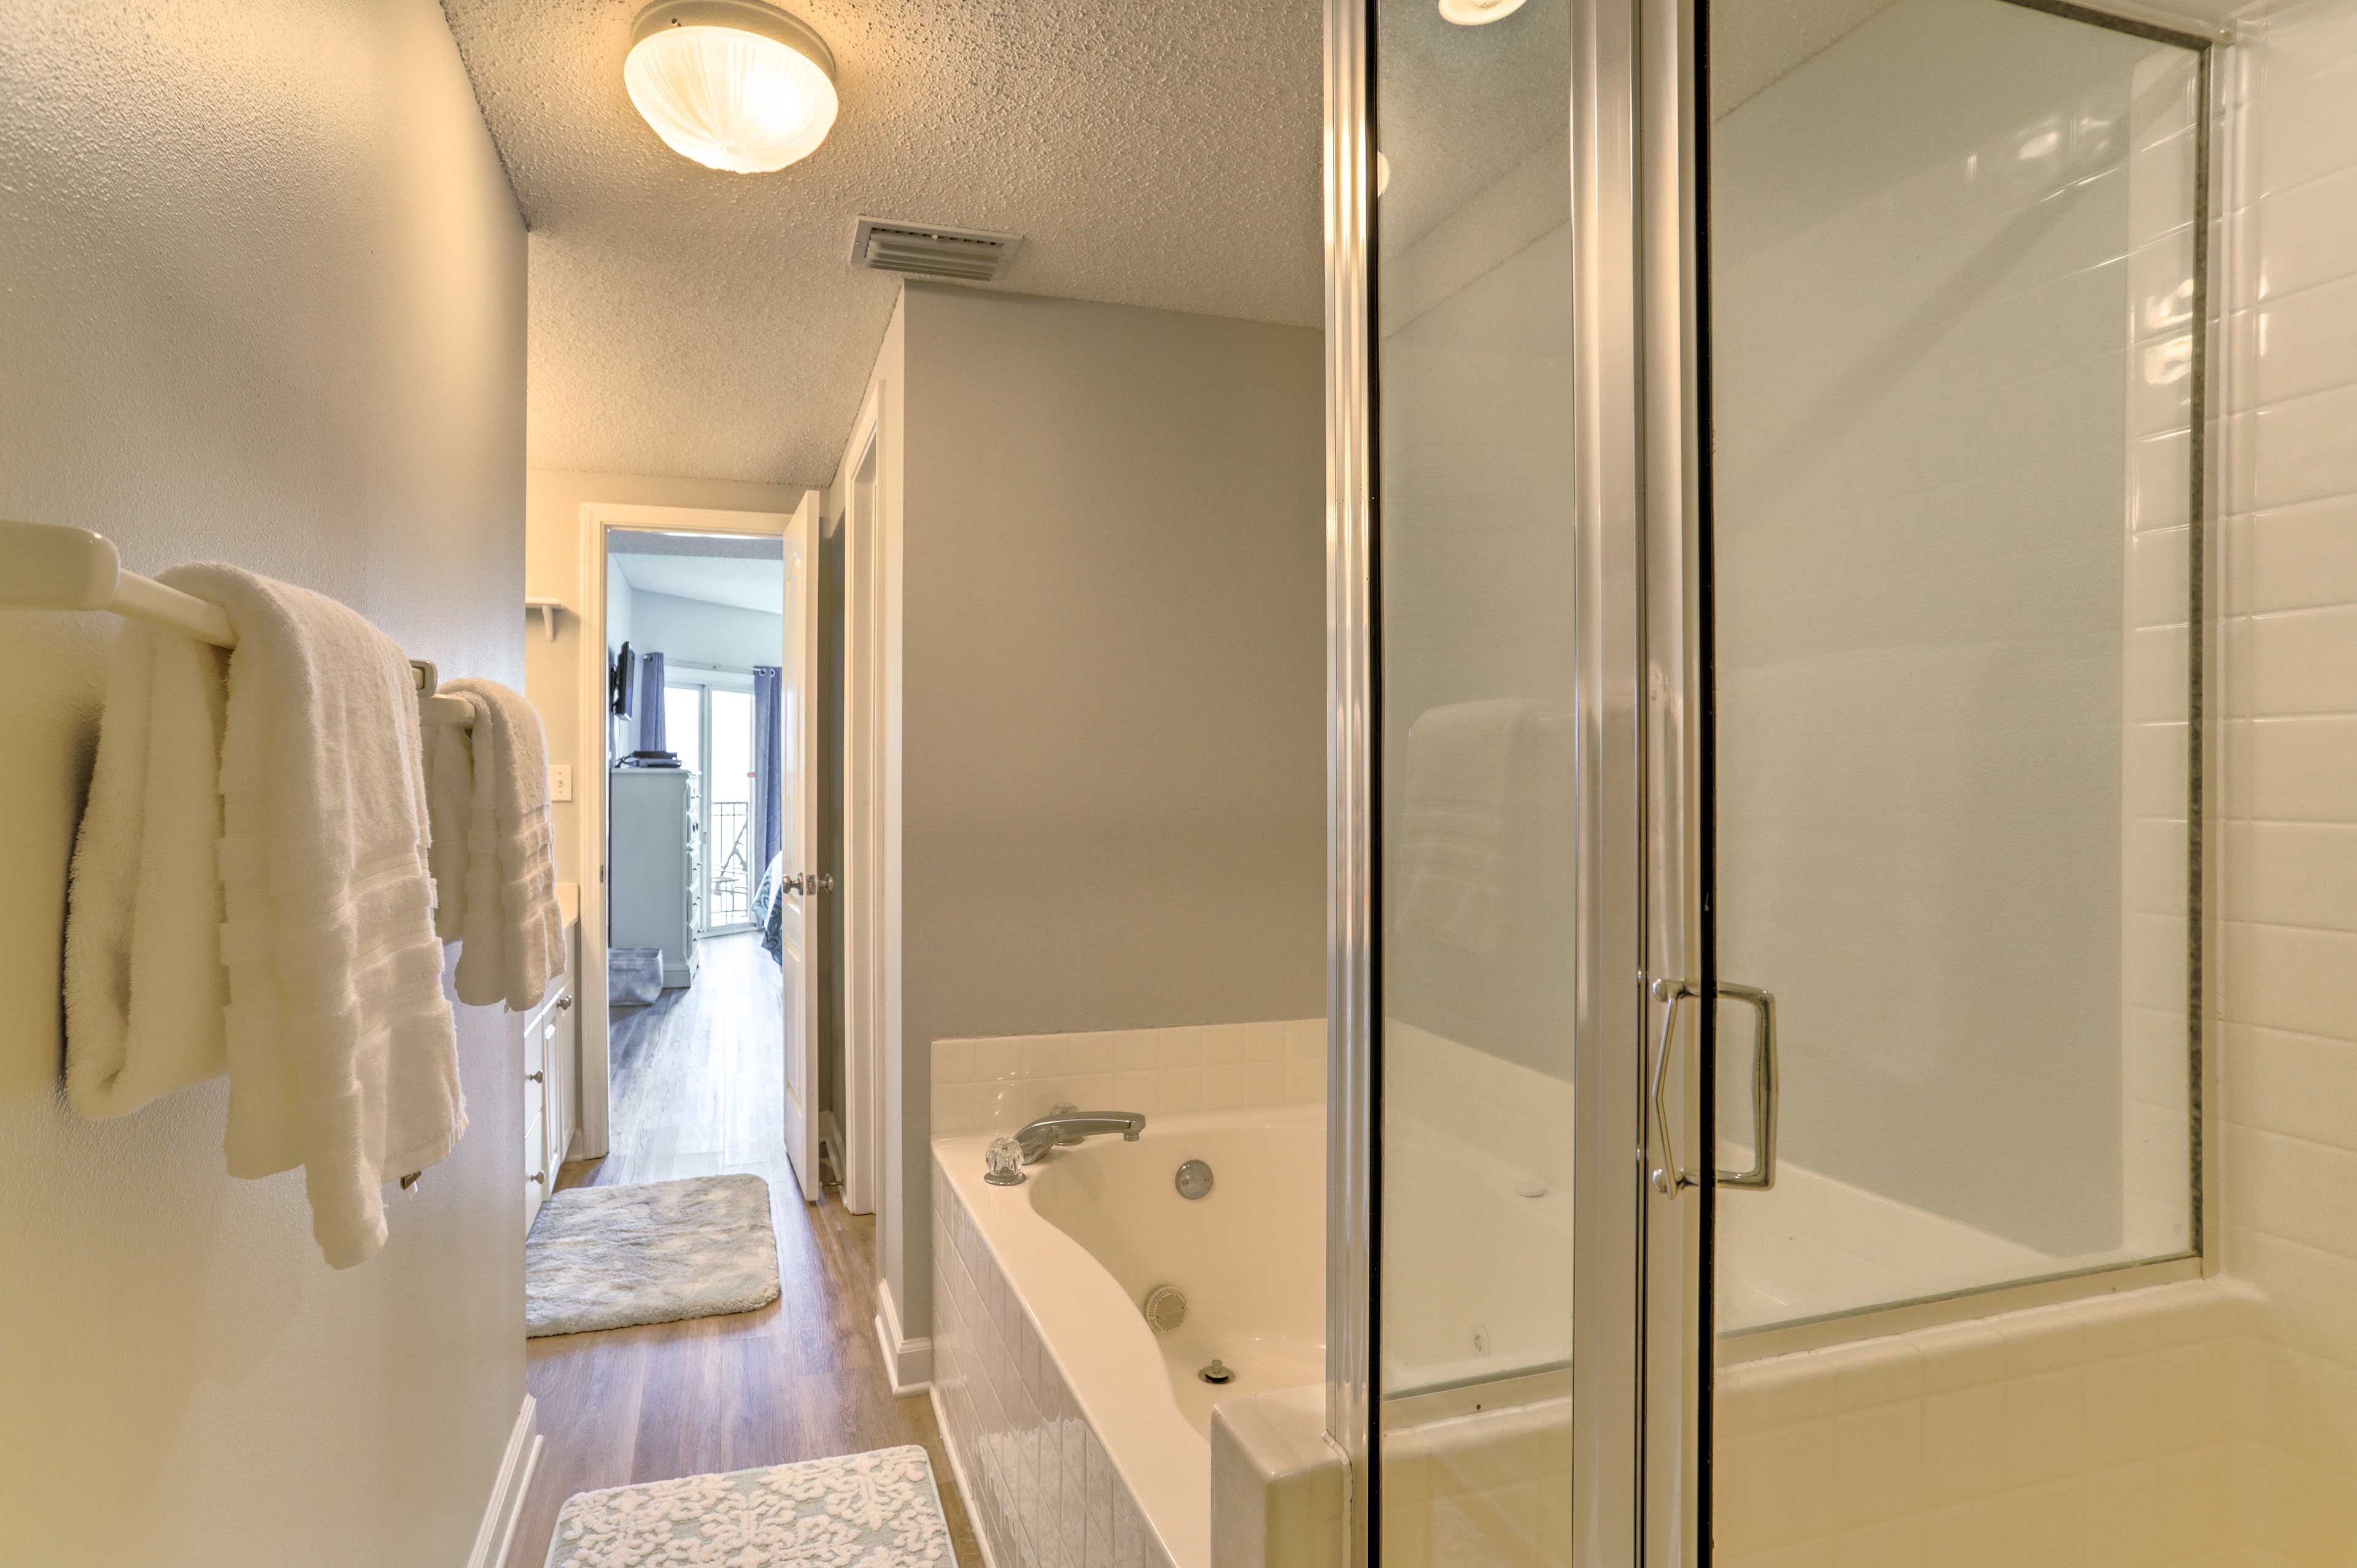 Enjoy a relaxing soak in the tub featured in the en-suite.